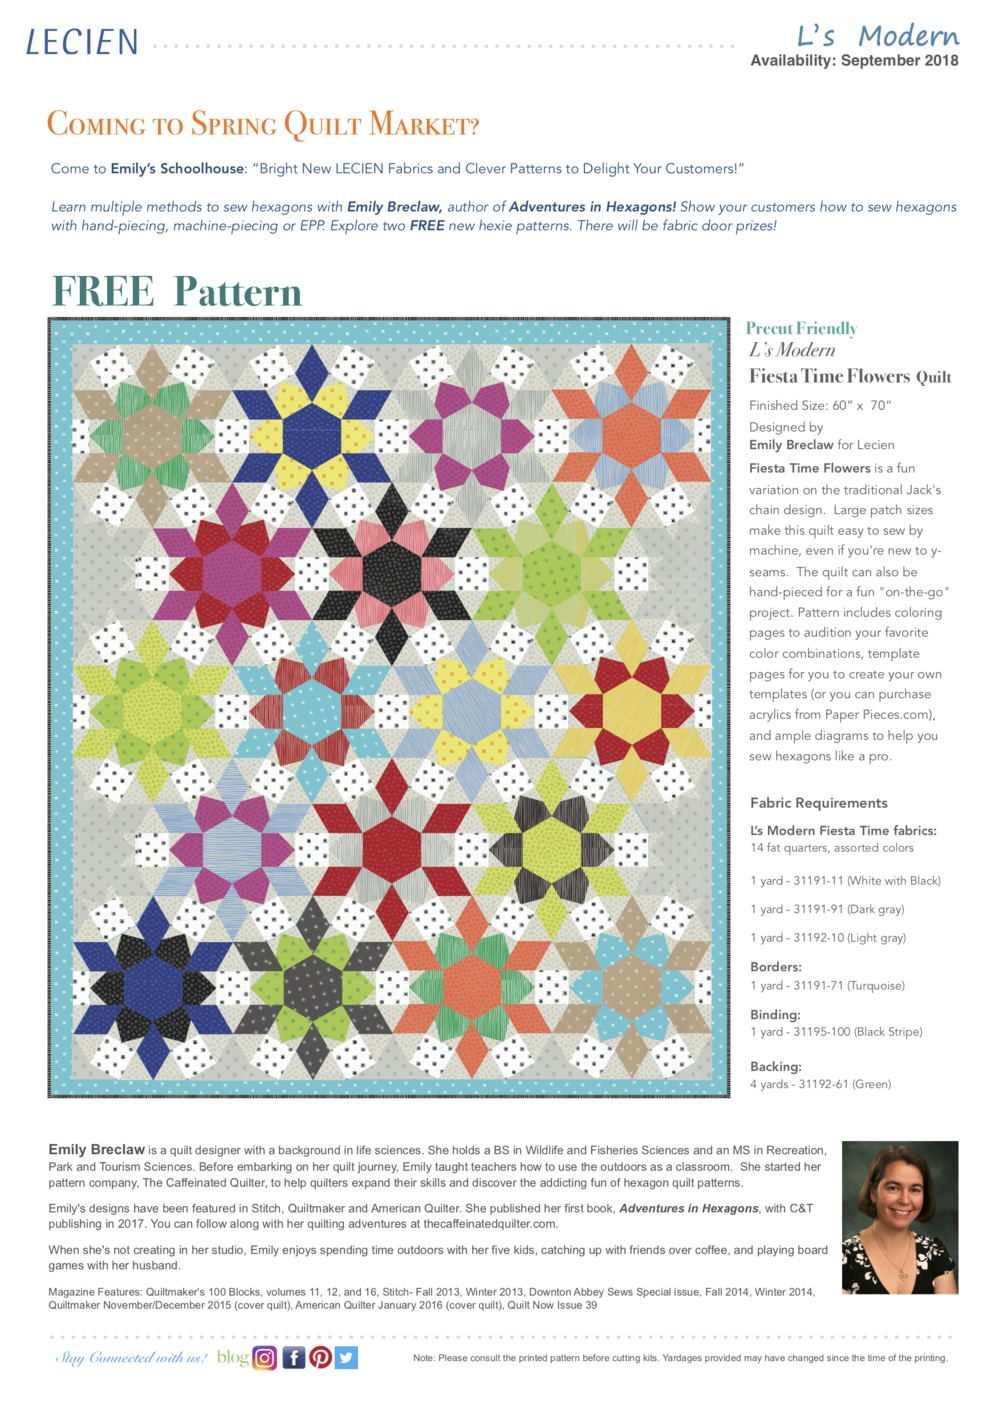 Lecien Fiesta Time Flowers Quilt Pattern